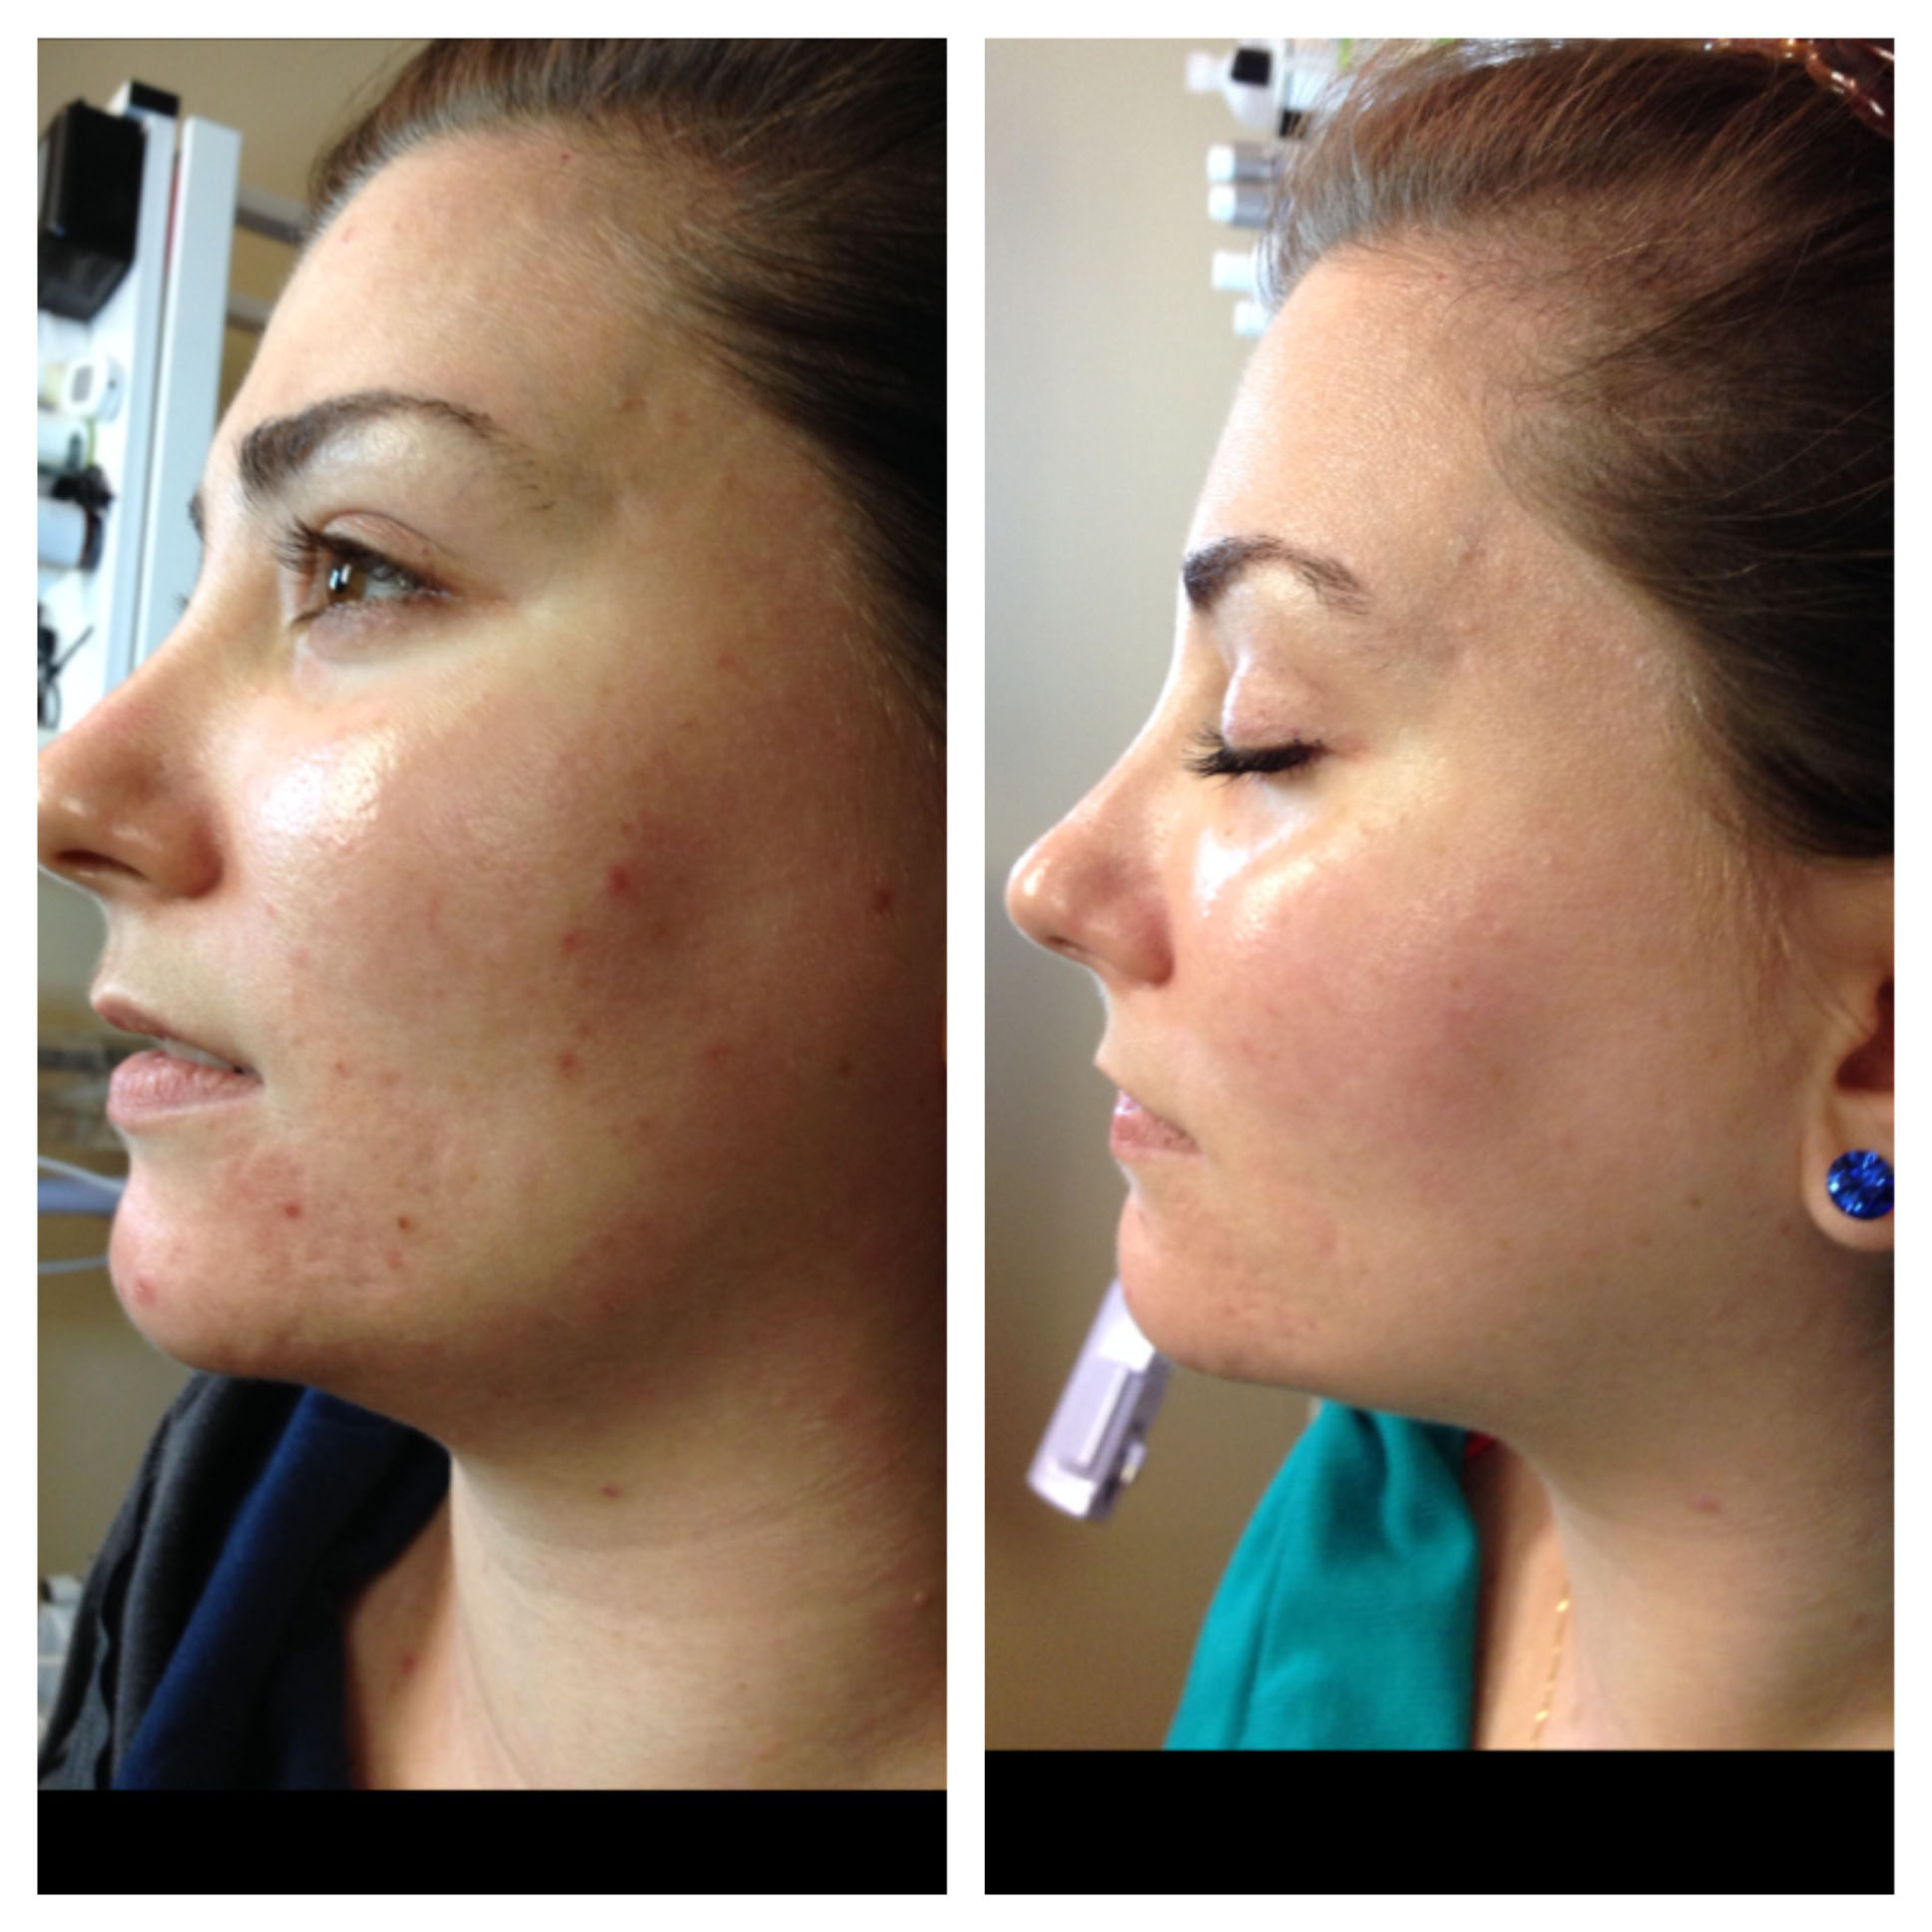 Acne Specialist Treatment Results